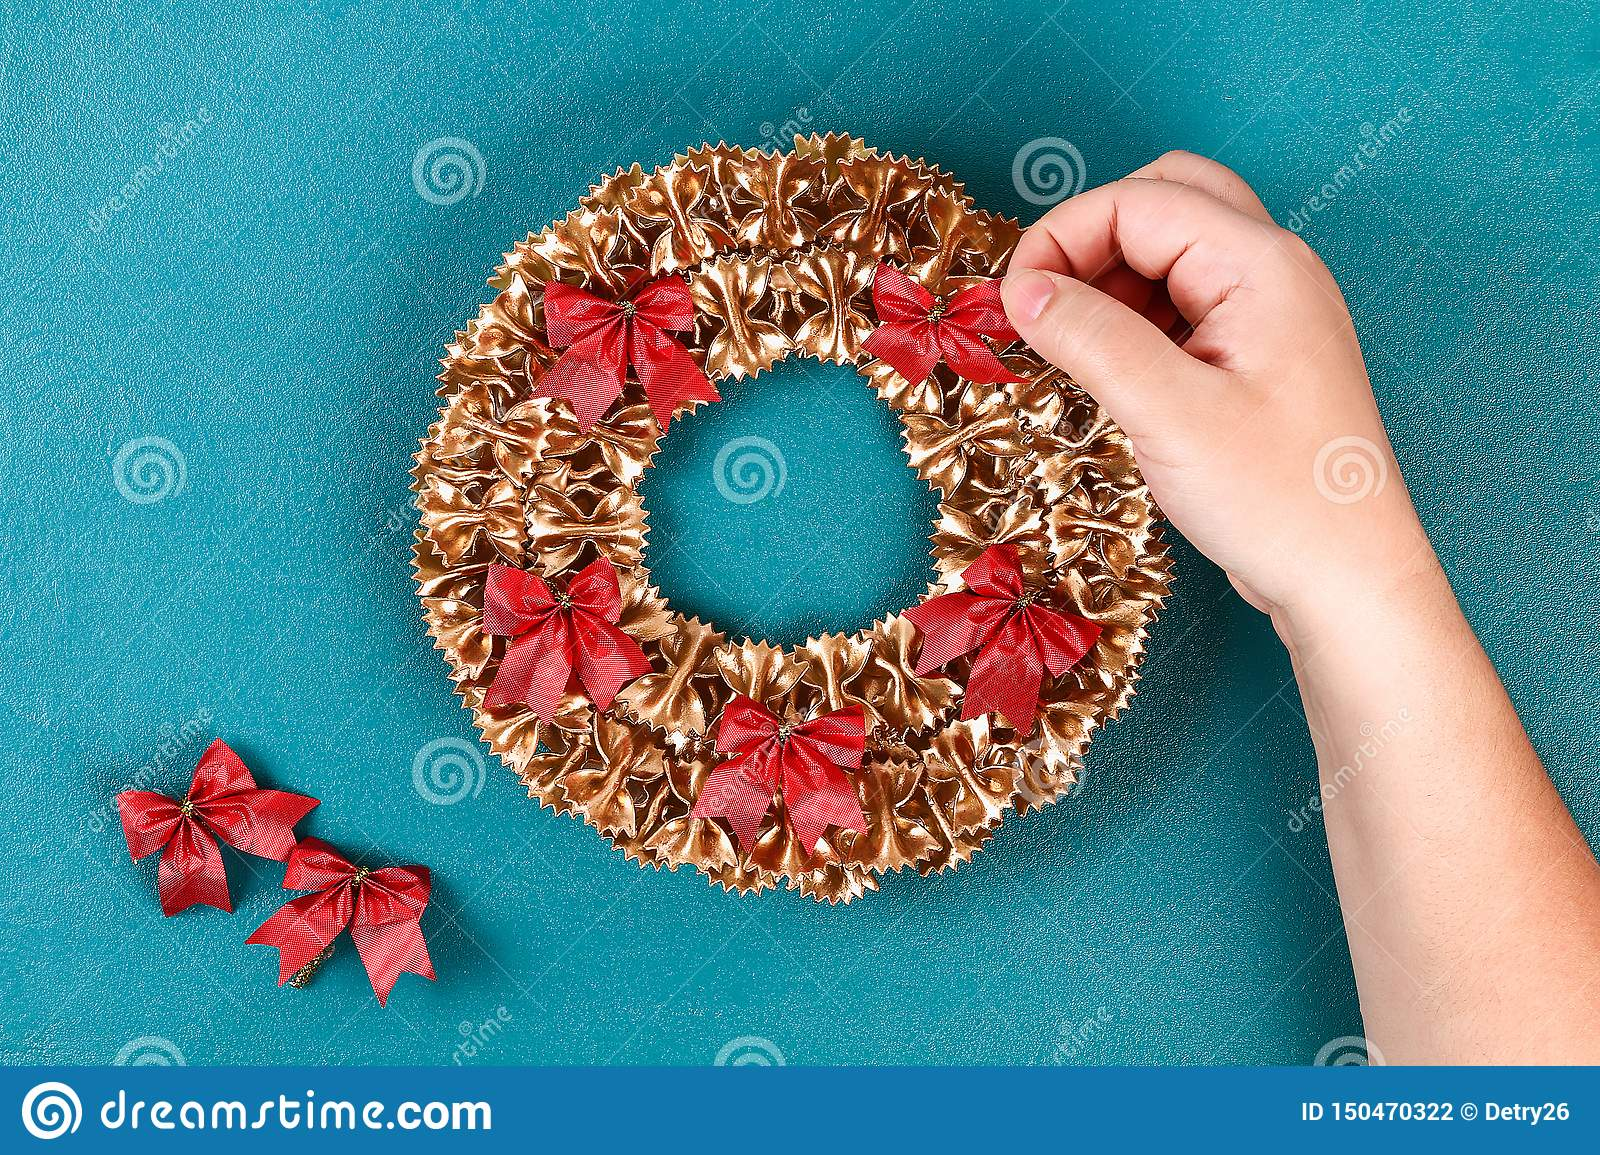 Diy Christmas pasta wreath on blue background. Gift idea, decor Christmas, Xmas, New Year